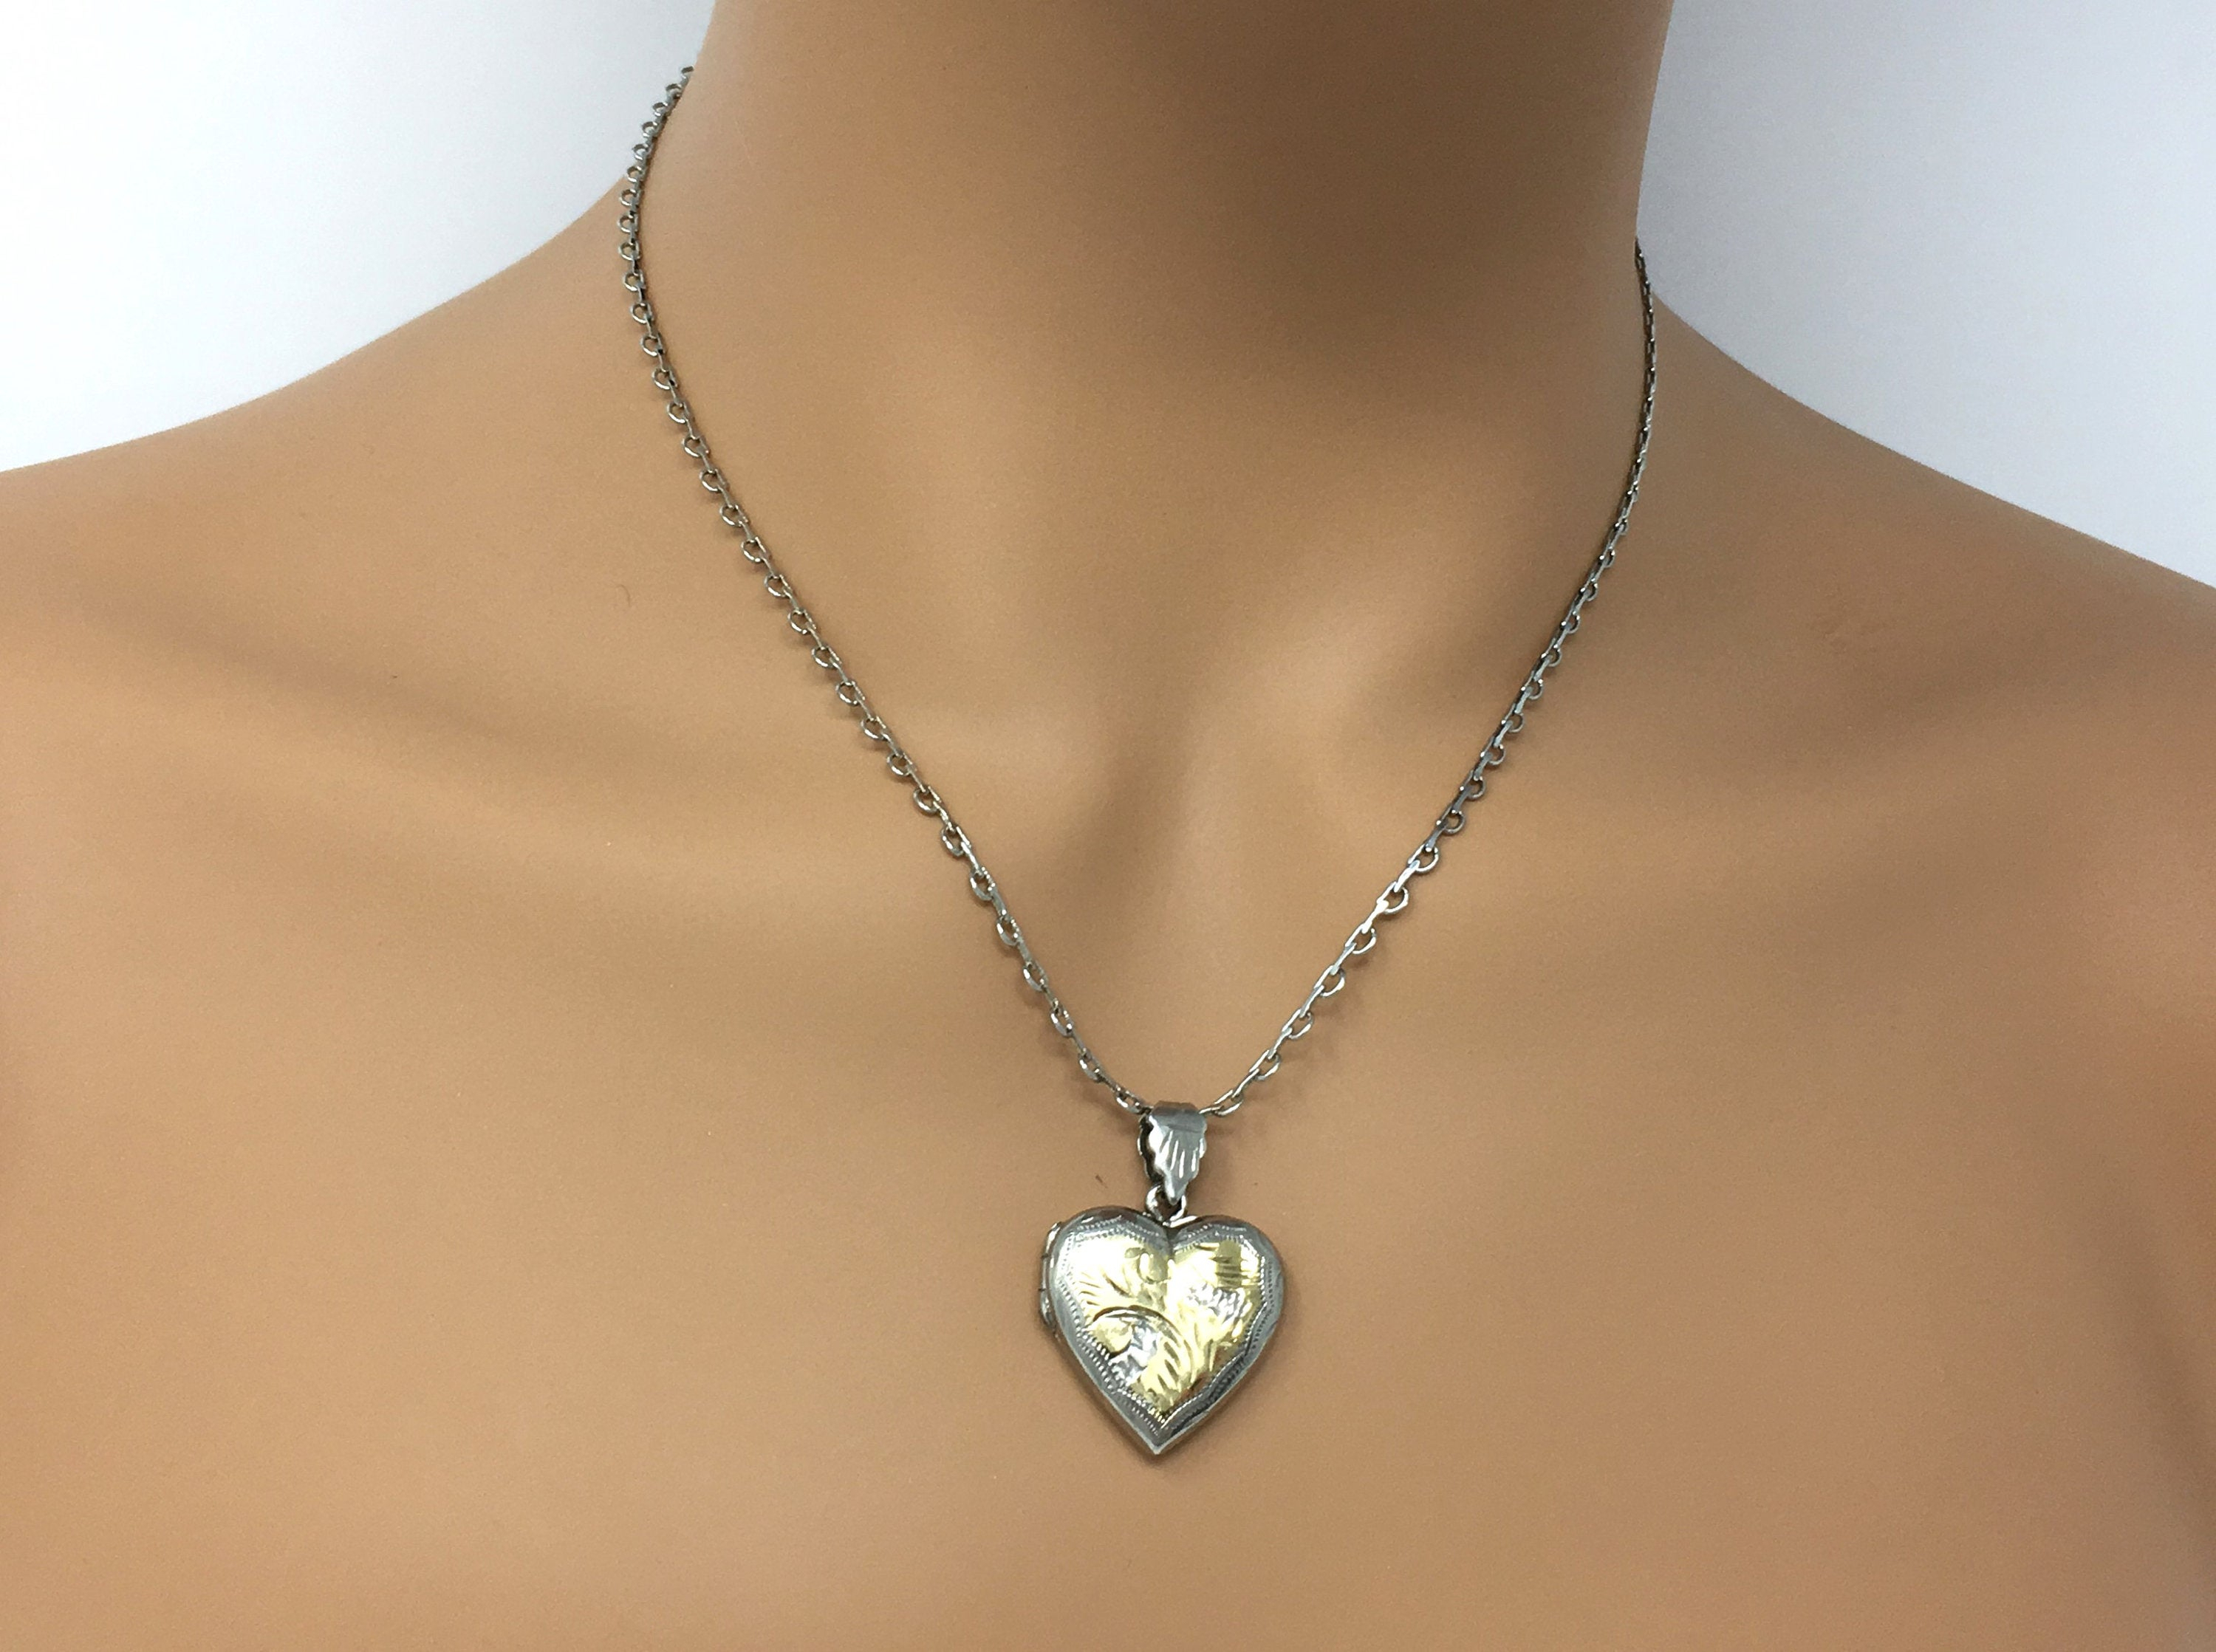 Sterling Puffy Heart Locket Necklace, Etched And Engraved Keepsake Jewelry, Vintage Locket Necklace For Her, Gift For Mom, Girlfriend Gift In Current Heart Locket Plate Necklaces (View 12 of 25)